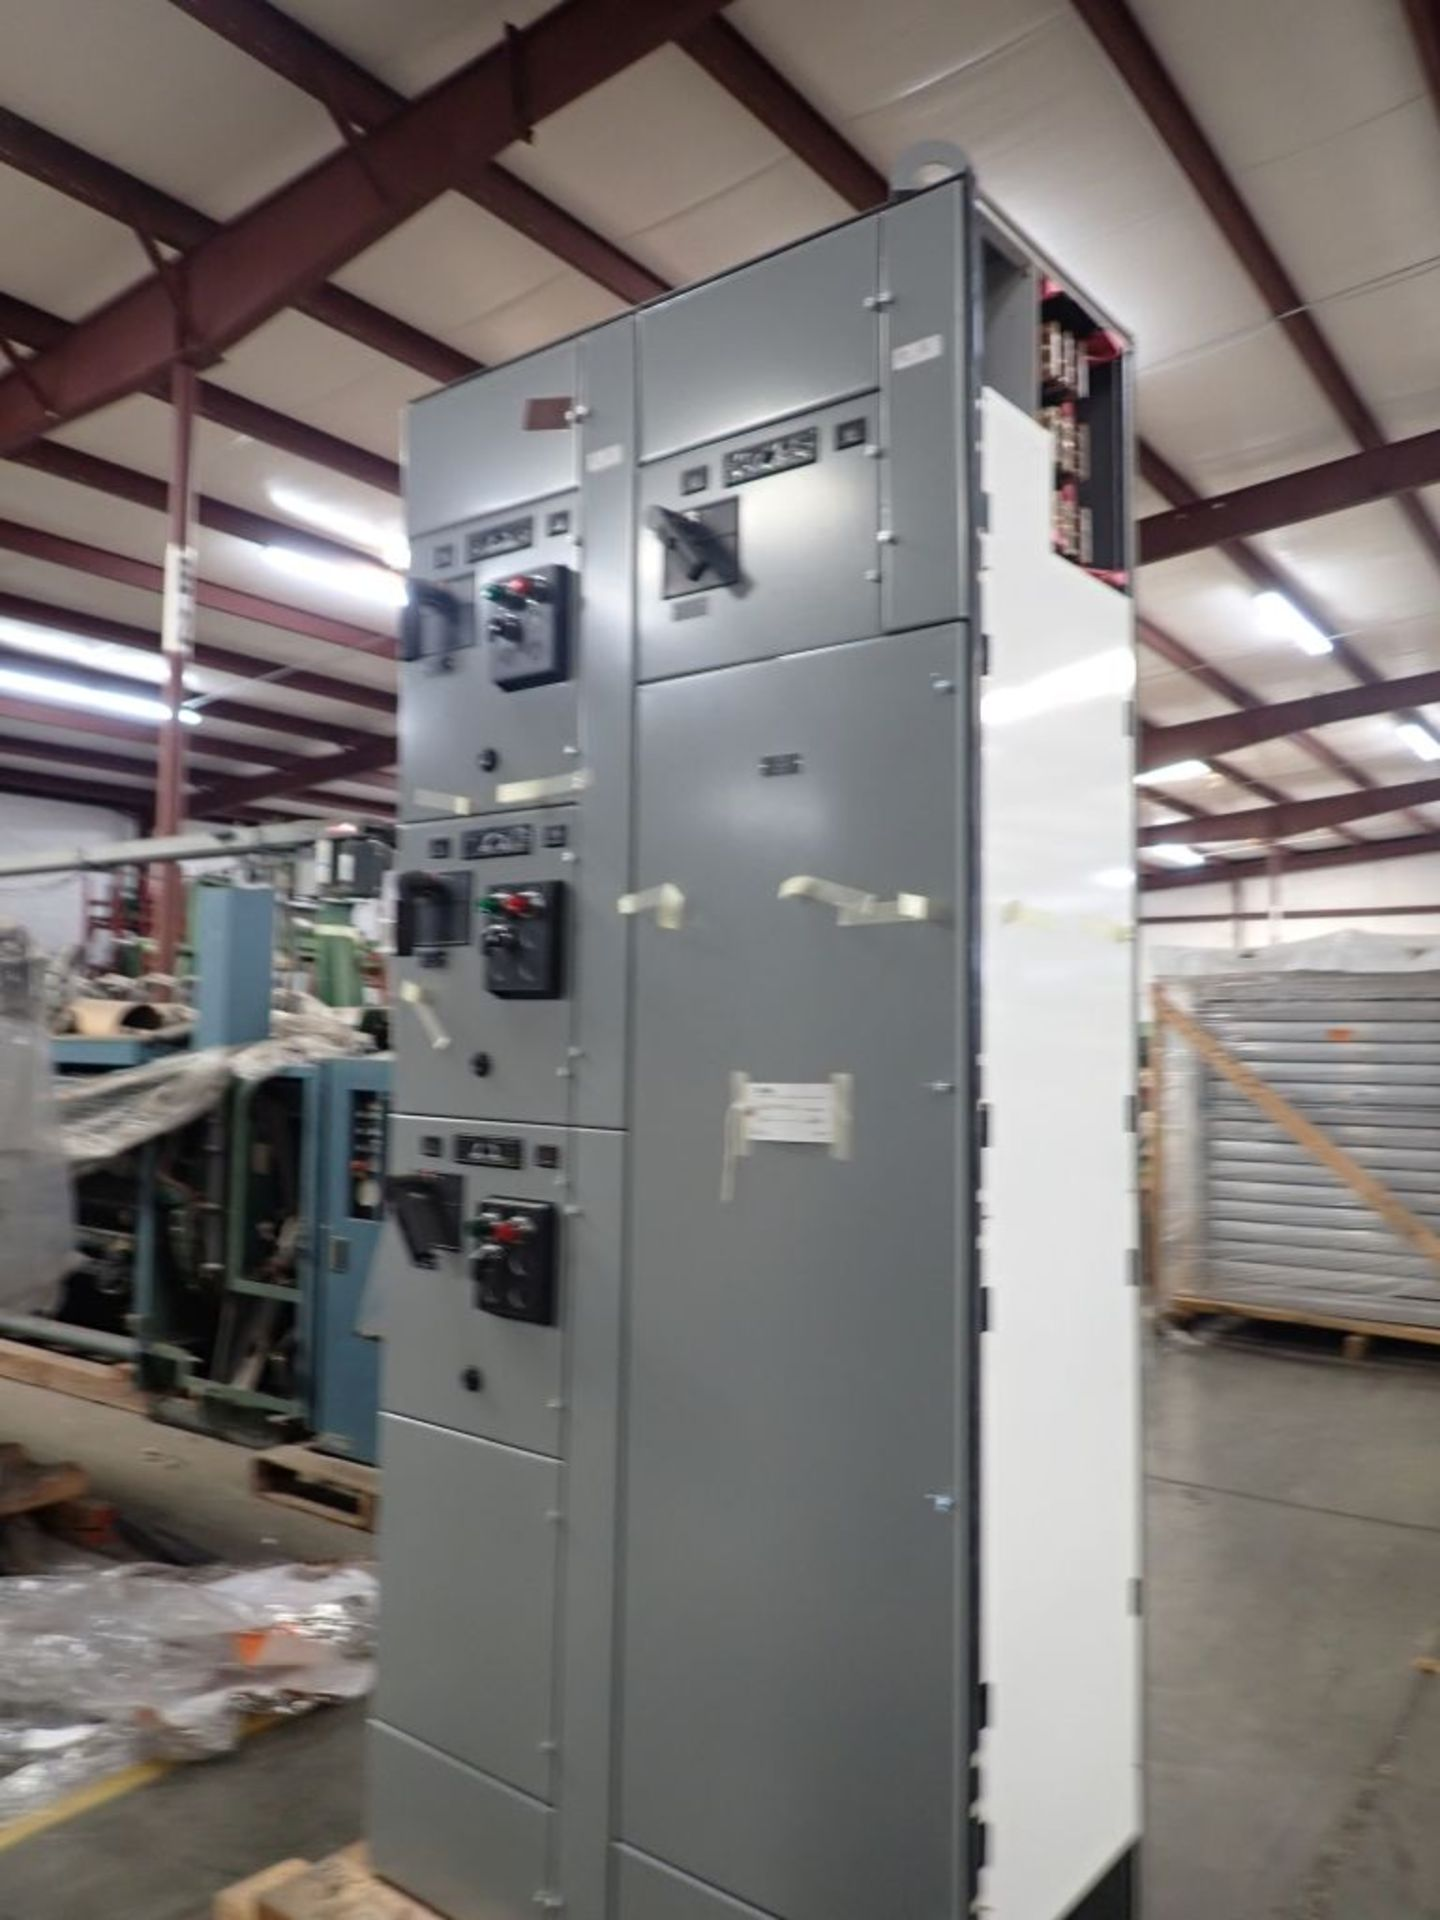 Eaton Freedom 2100 Series Motor Control Center   (2) F206-15A-10HP; (1) F206-30A-10HP; (1) FDRB- - Image 6 of 61